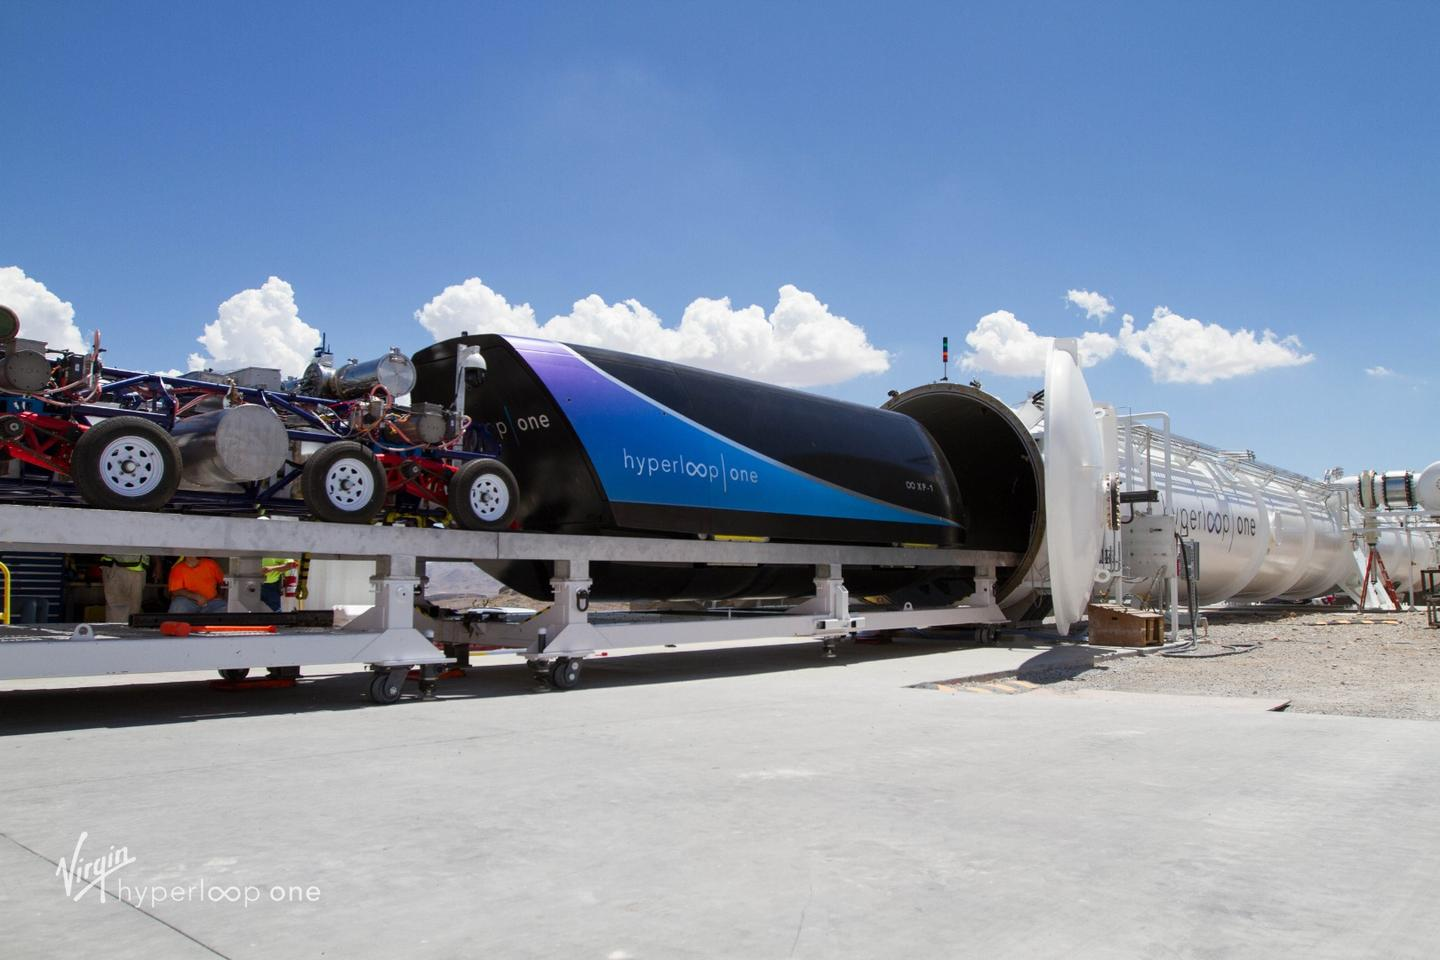 Virgin Hyperloop One hopes to one day establish high-speed transport networks involving levitating capsules and near-vacuum tubes